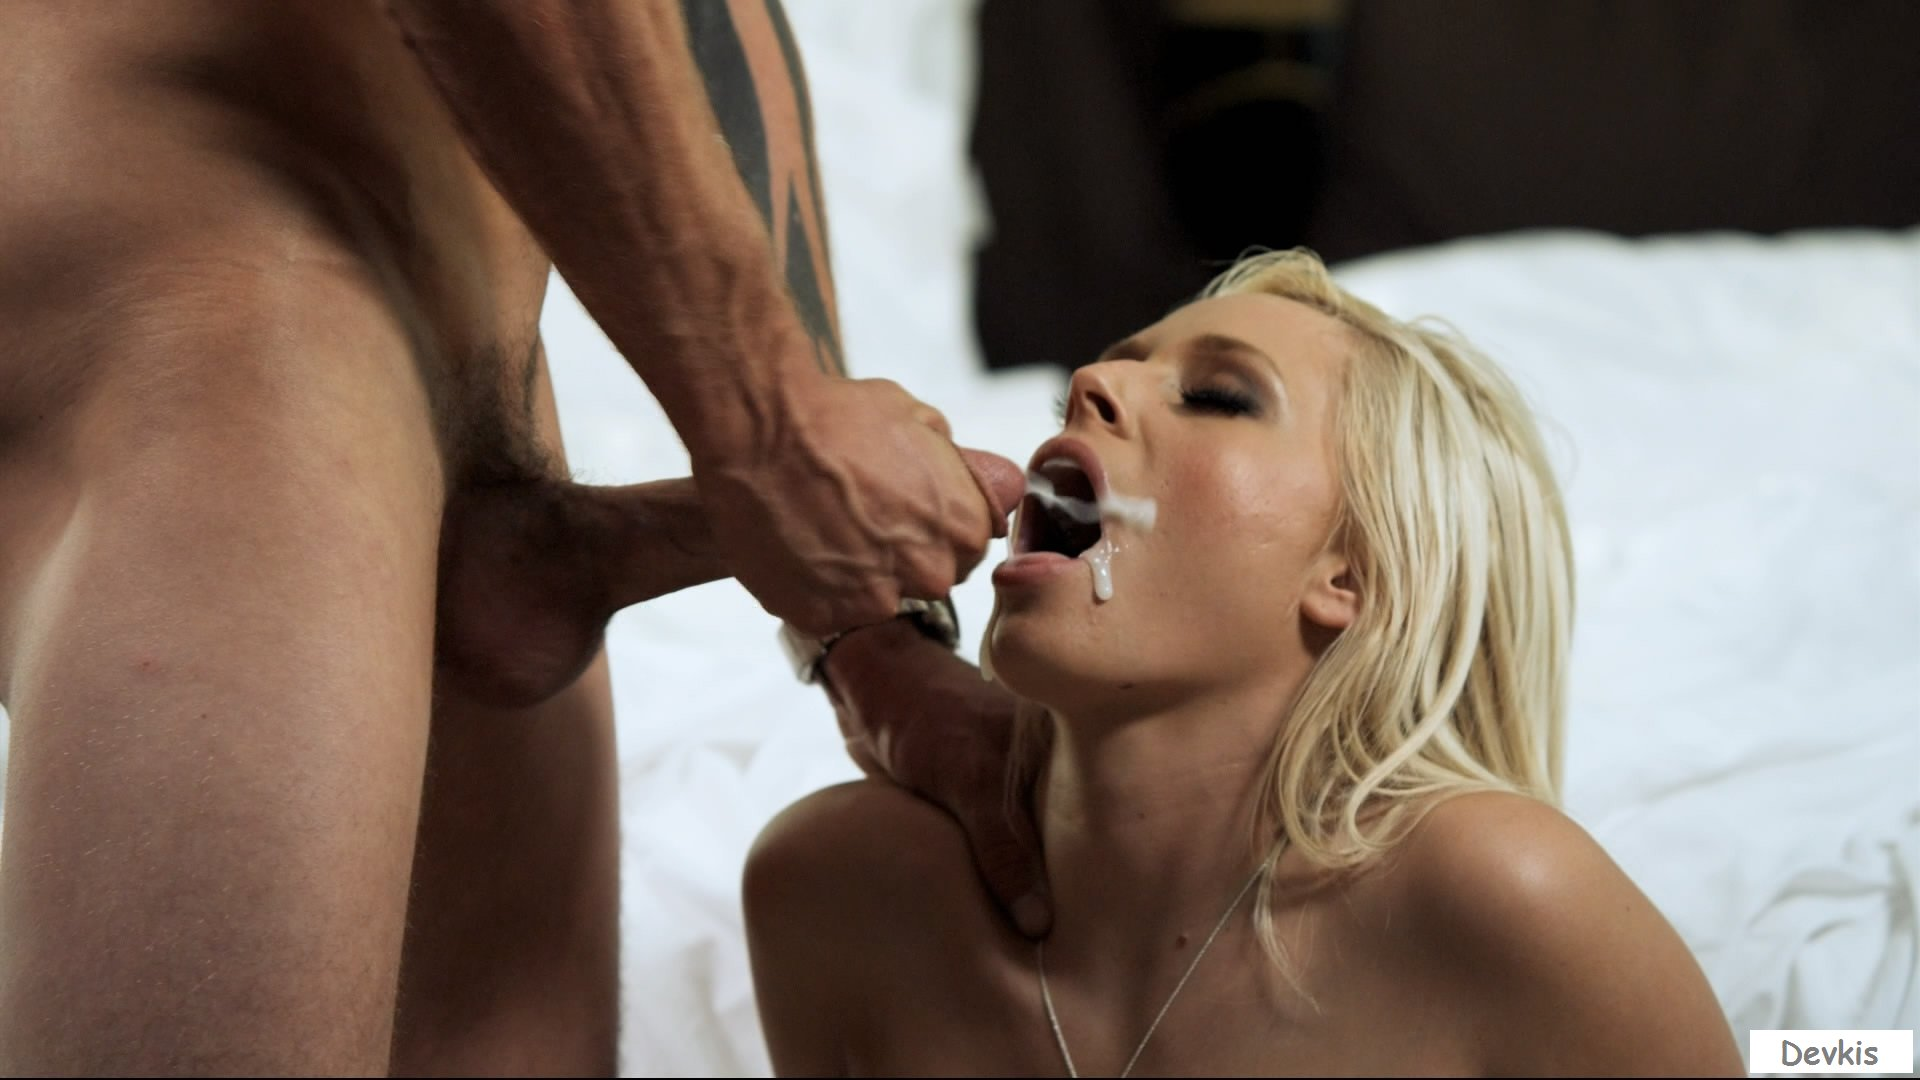 Julesjordan jesse jane first anal full hd